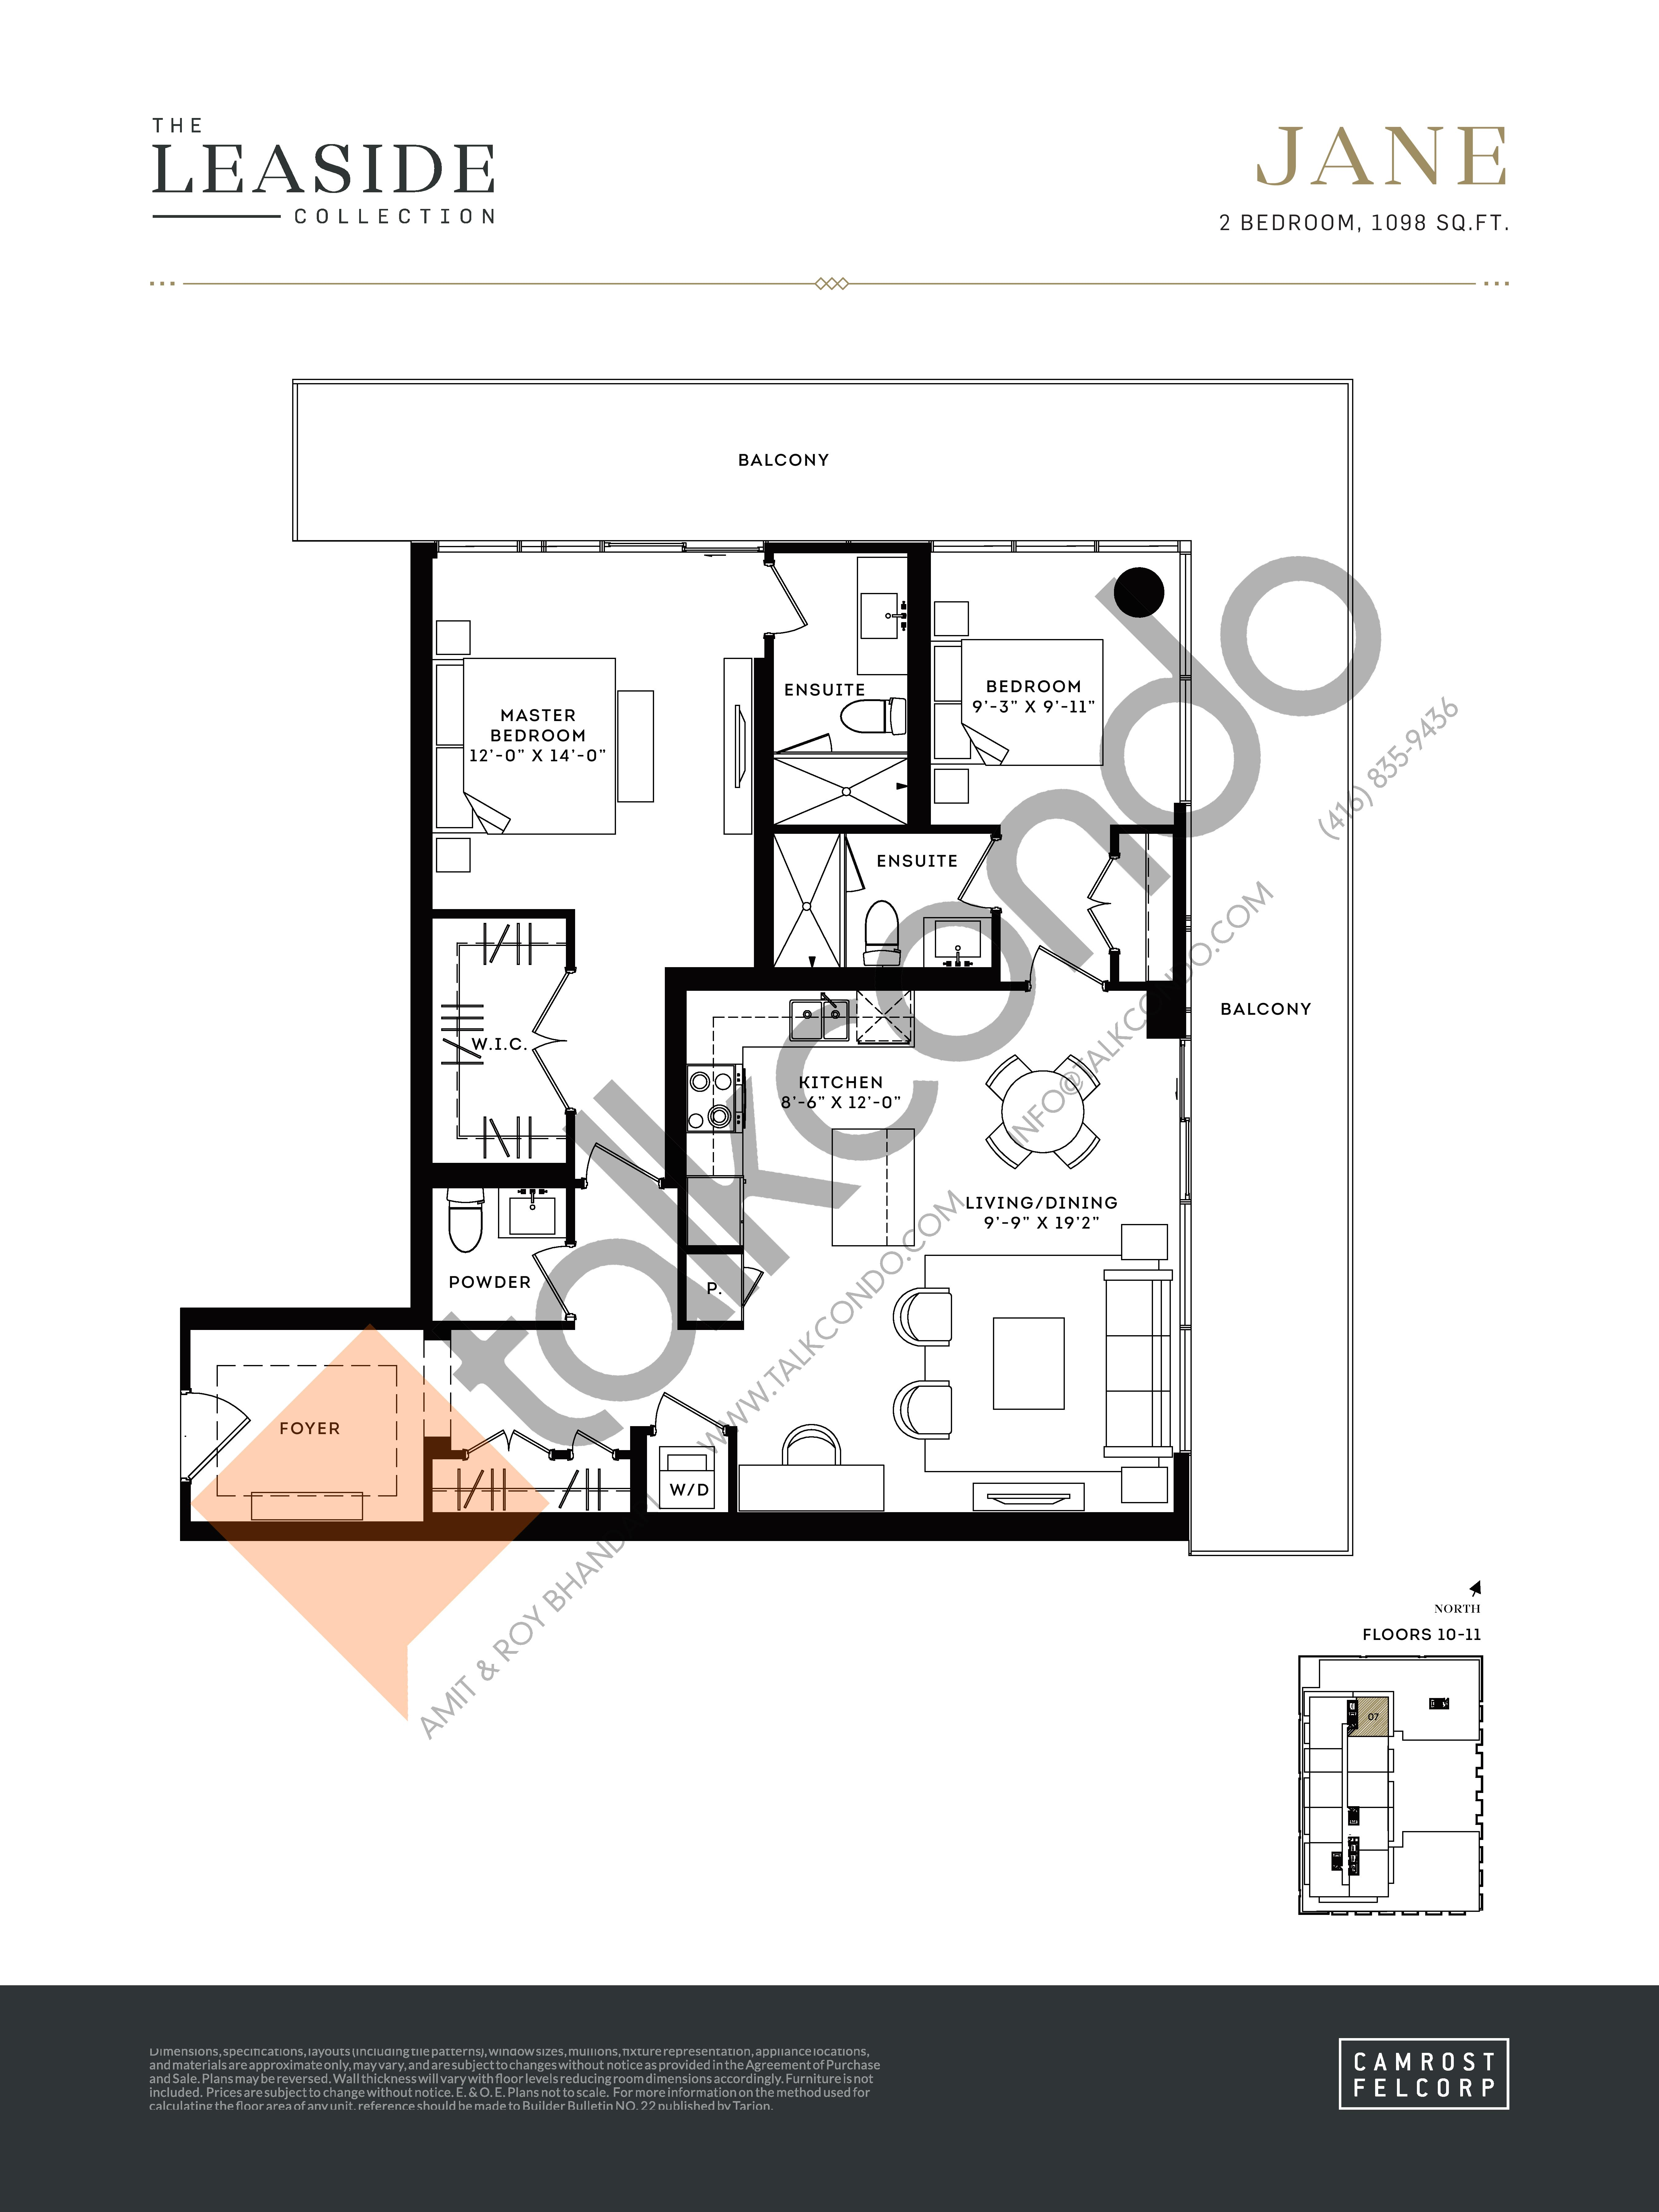 Jane (The Leaside Collection) Floor Plan at Upper East Village Condos - 1098 sq.ft